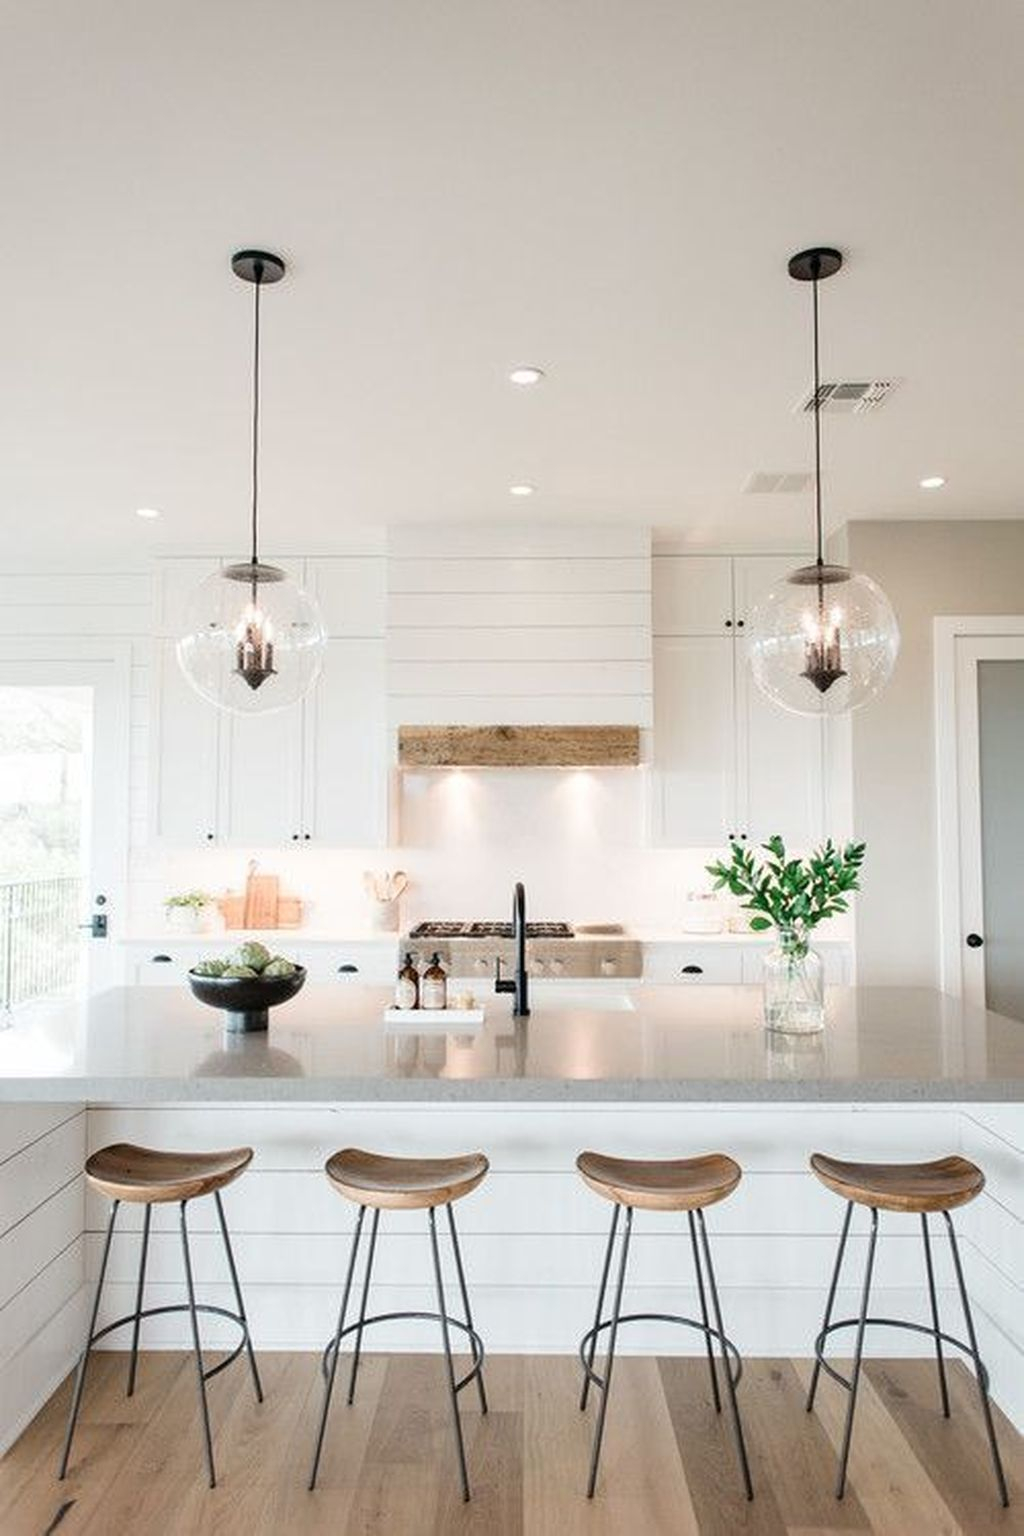 Awesome Kitchen Design Ideas That You Have To See It 26